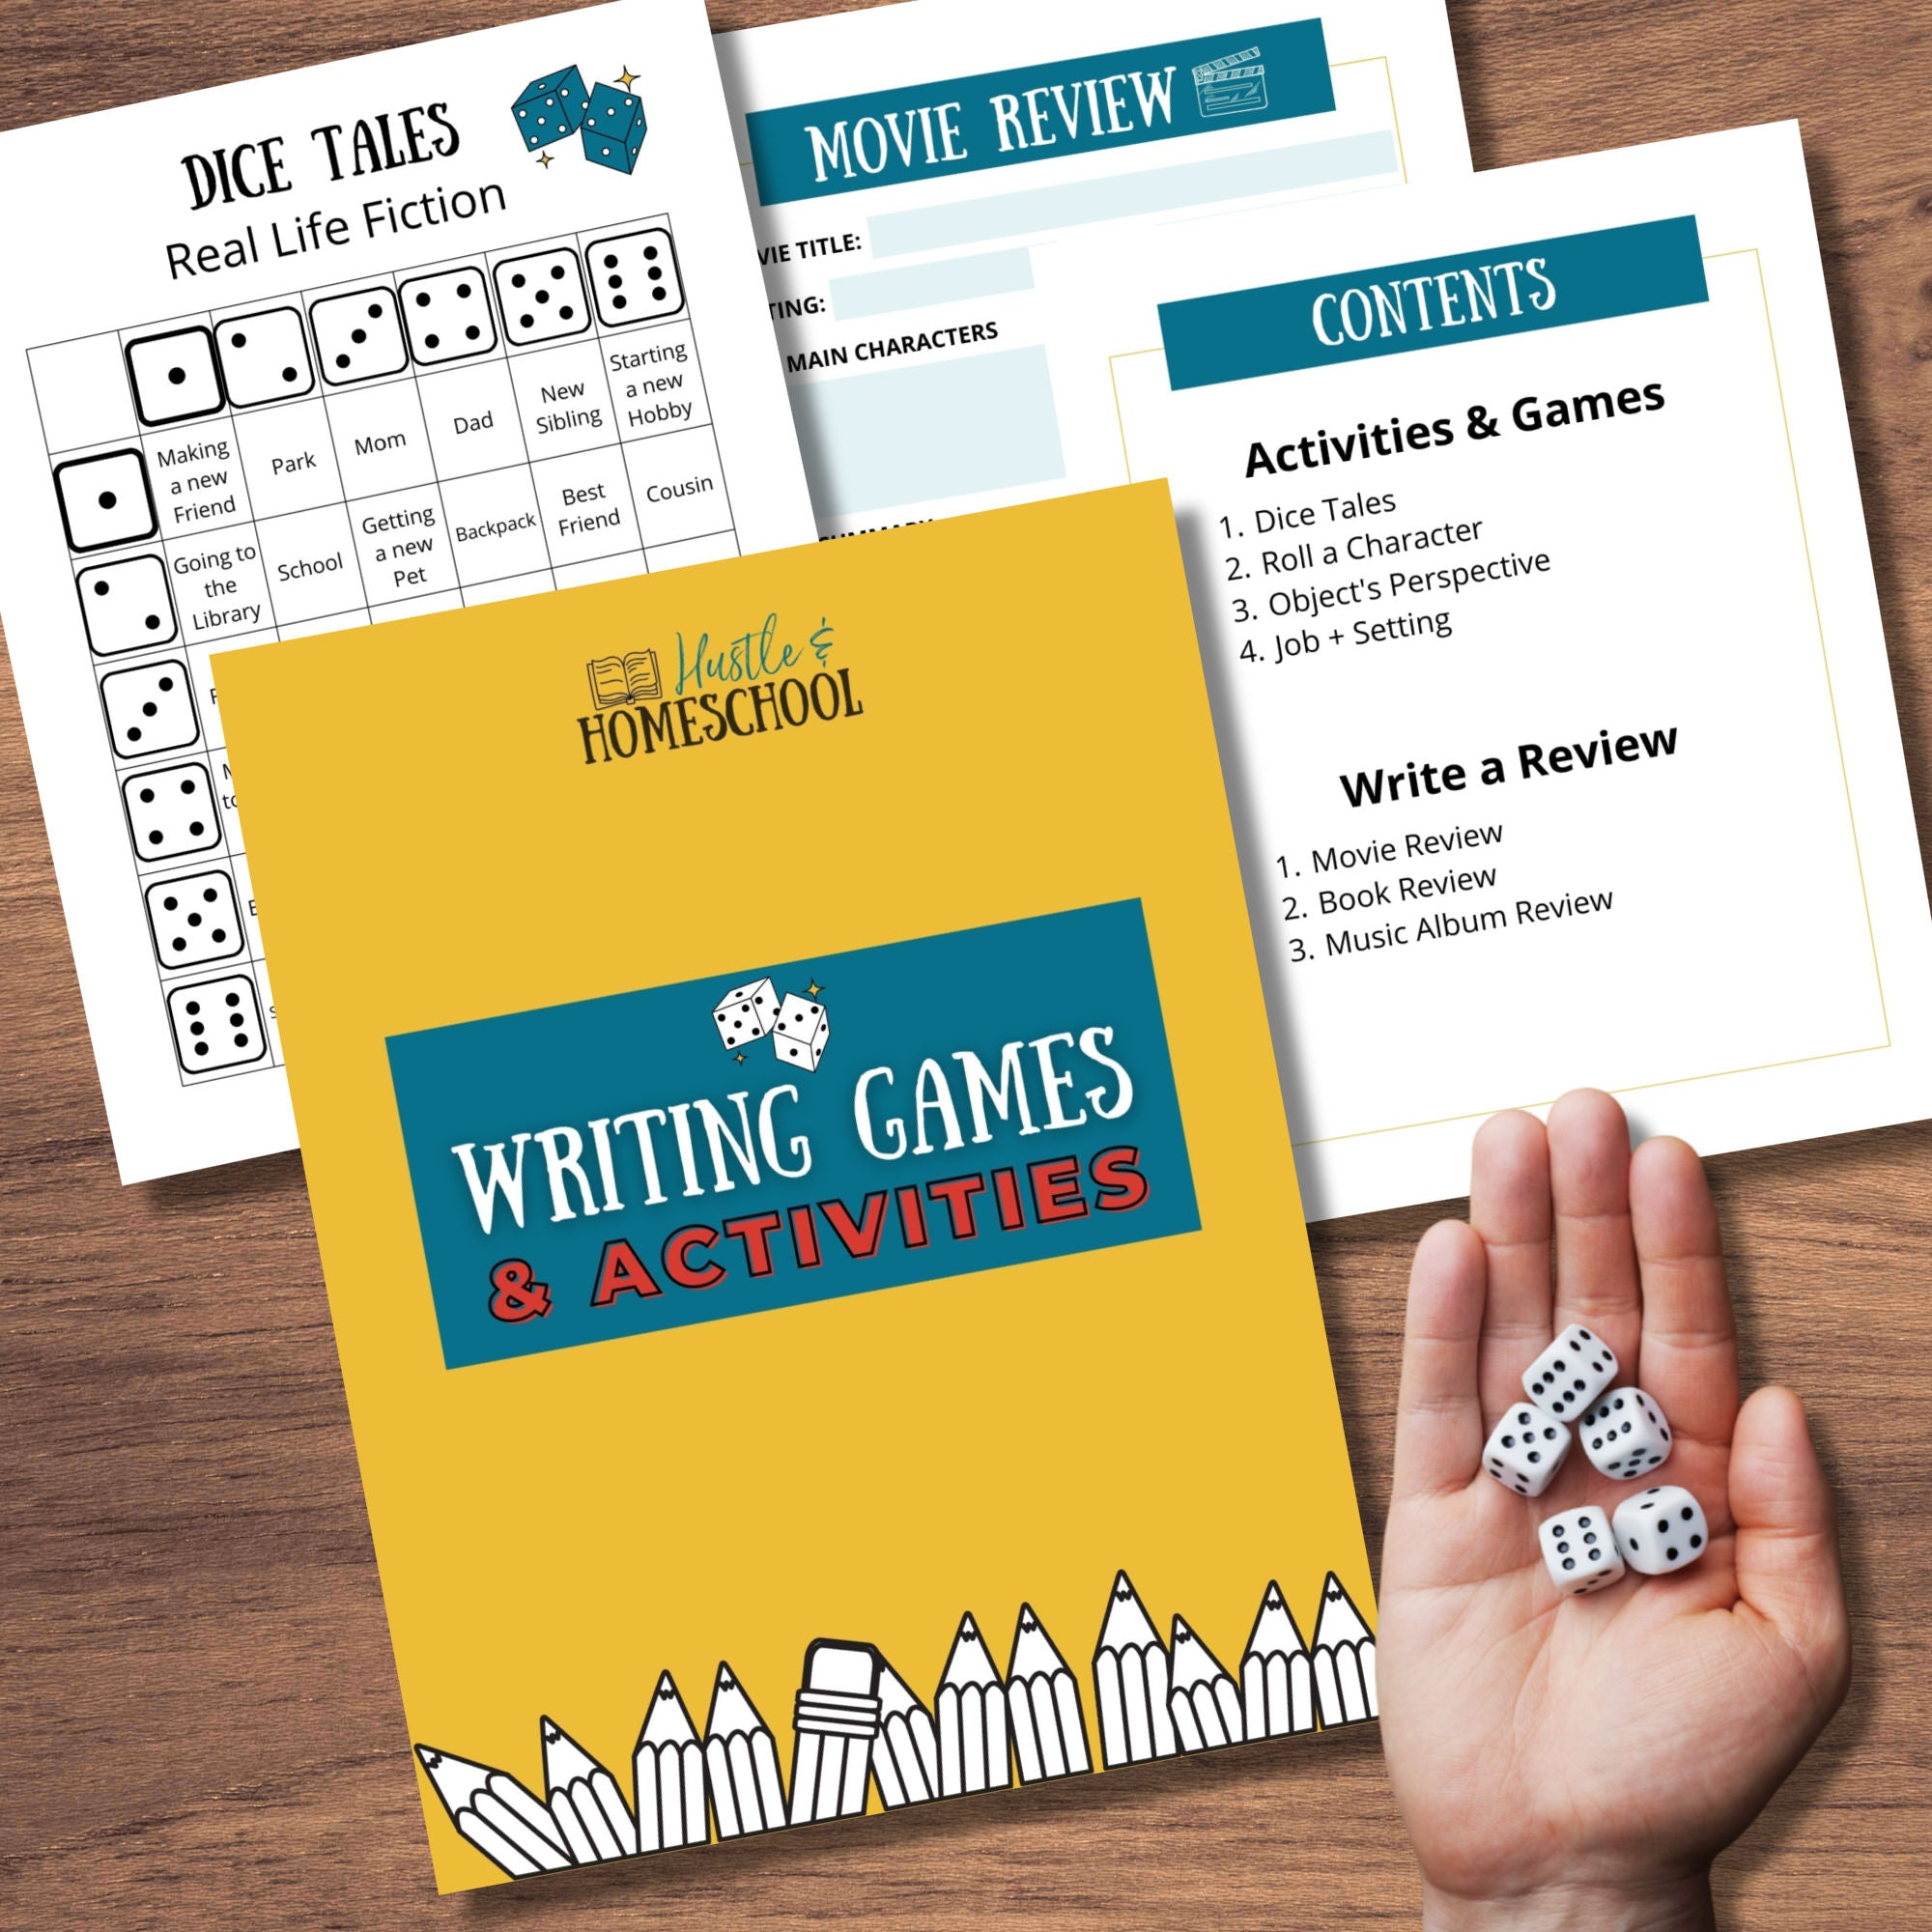 Writing Games & Activities